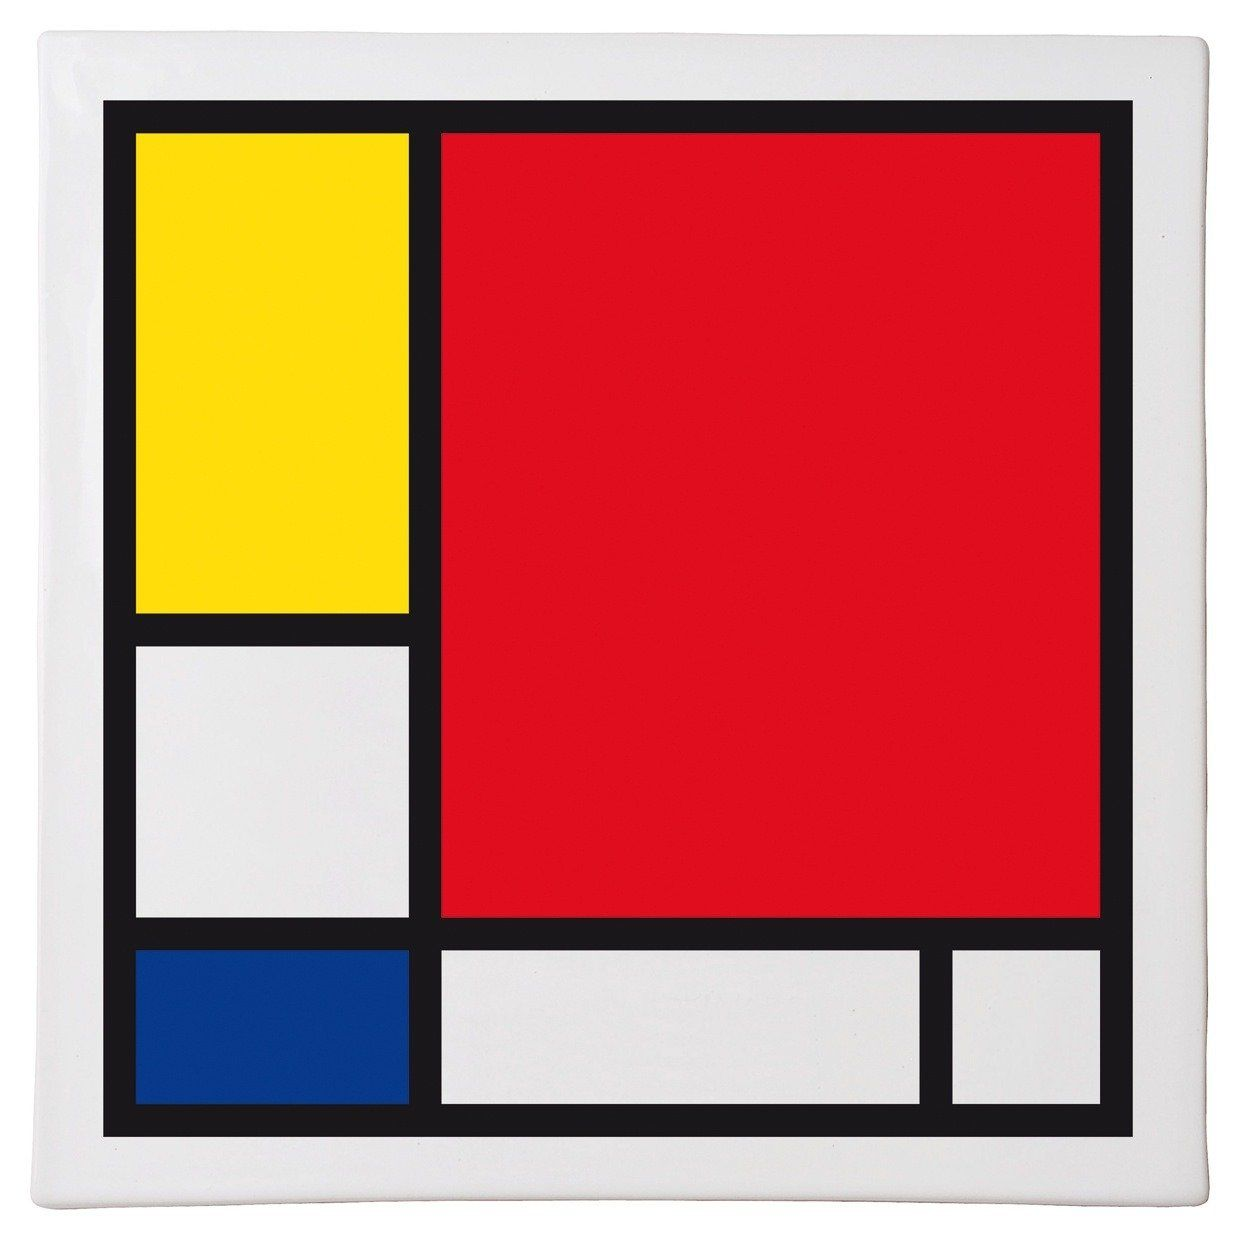 Mondrian Wall Mondrian Wall Real Nigga Shit Pinterest Tapetes And